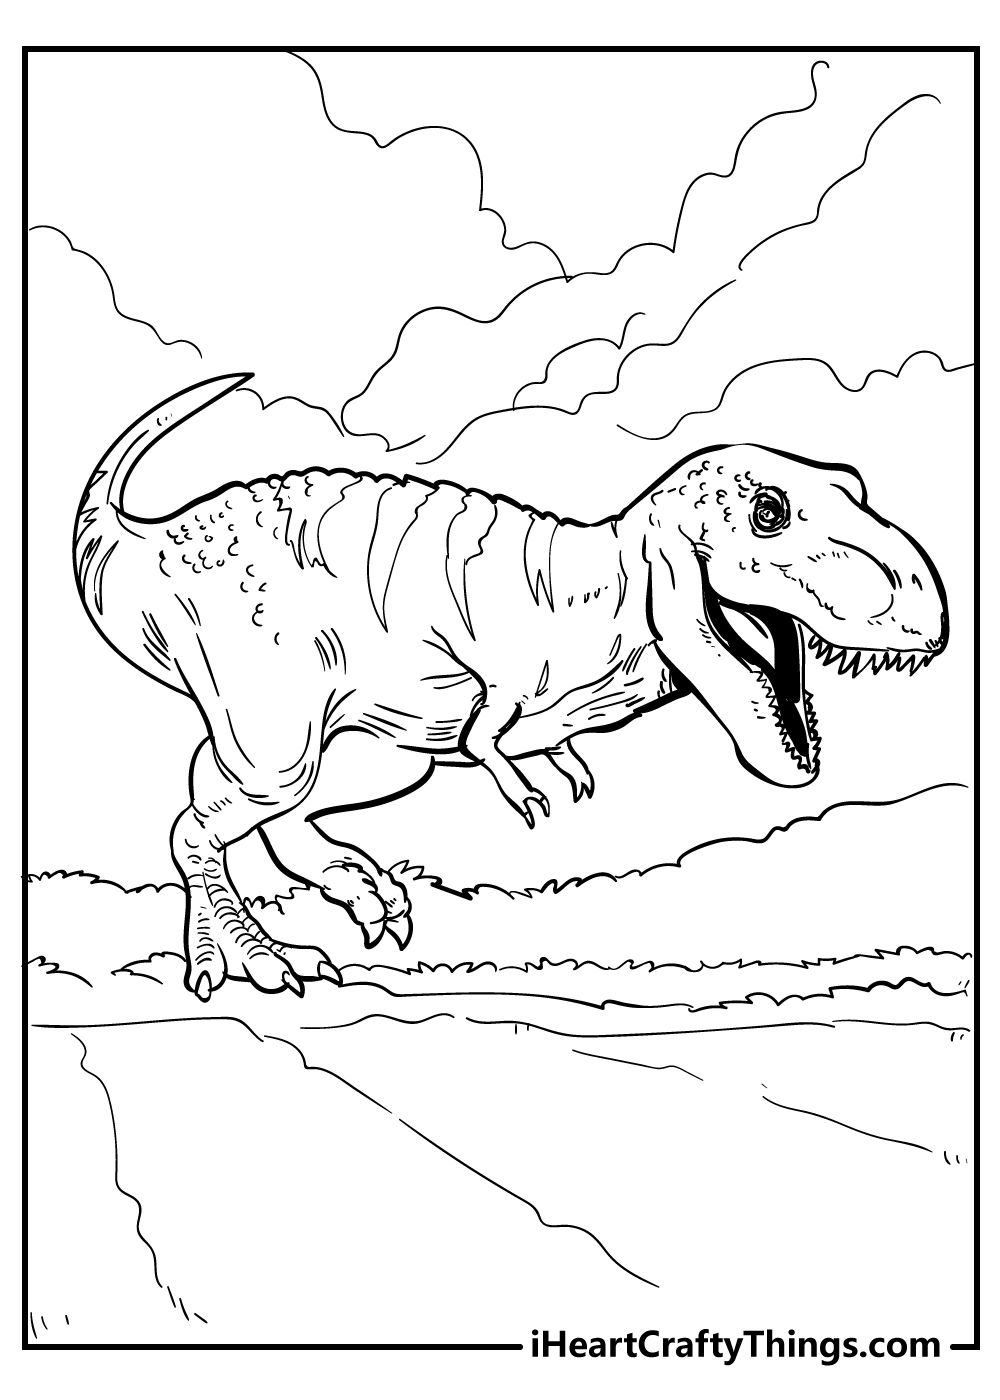 cartoon jurassic world t-rex coloring pages free printable